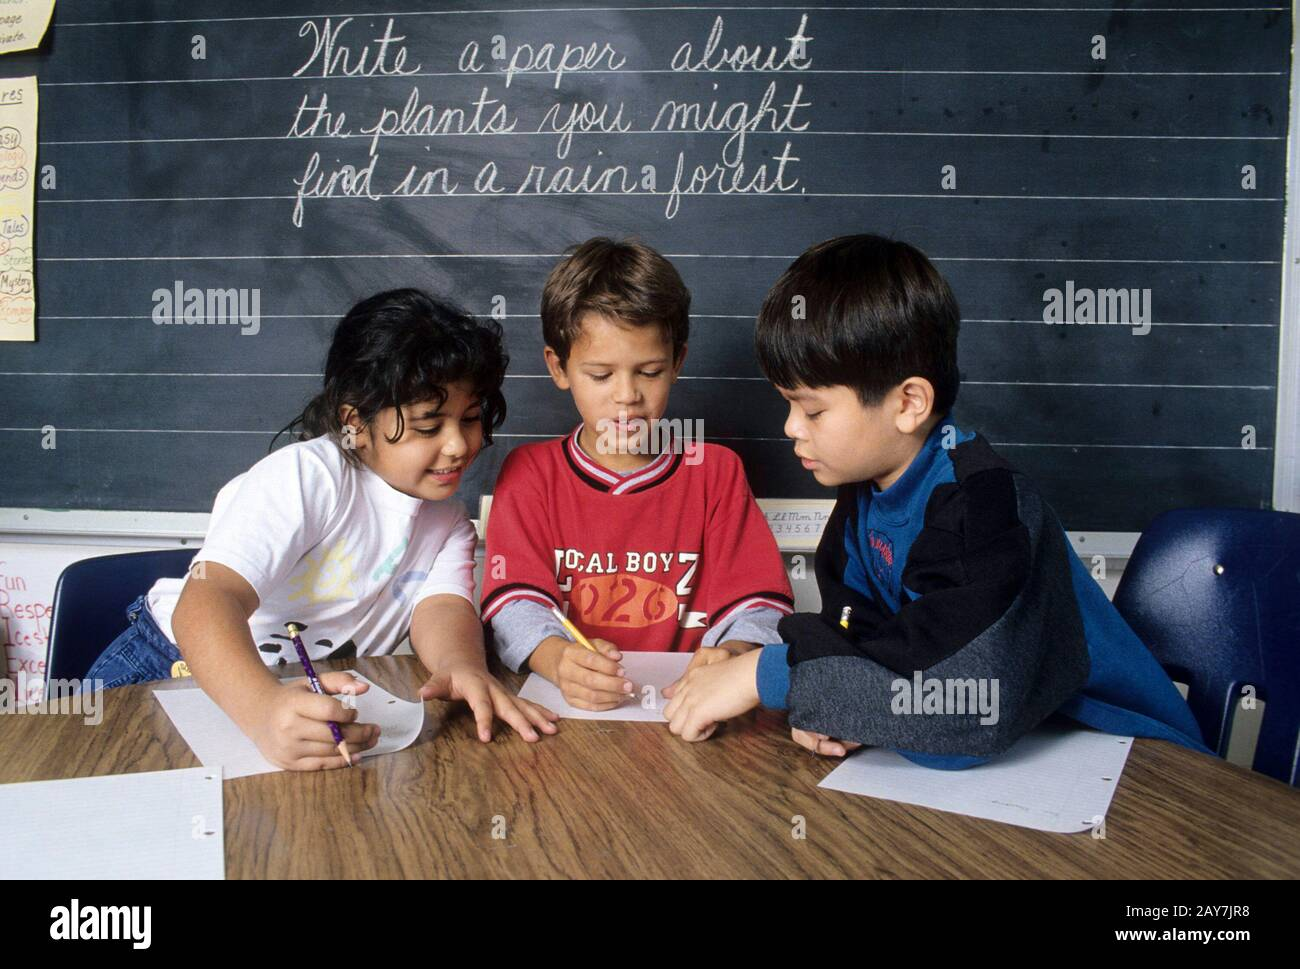 Essay writing by third graders for reading/science unit. ©Bob Daemmrich Stock Photo